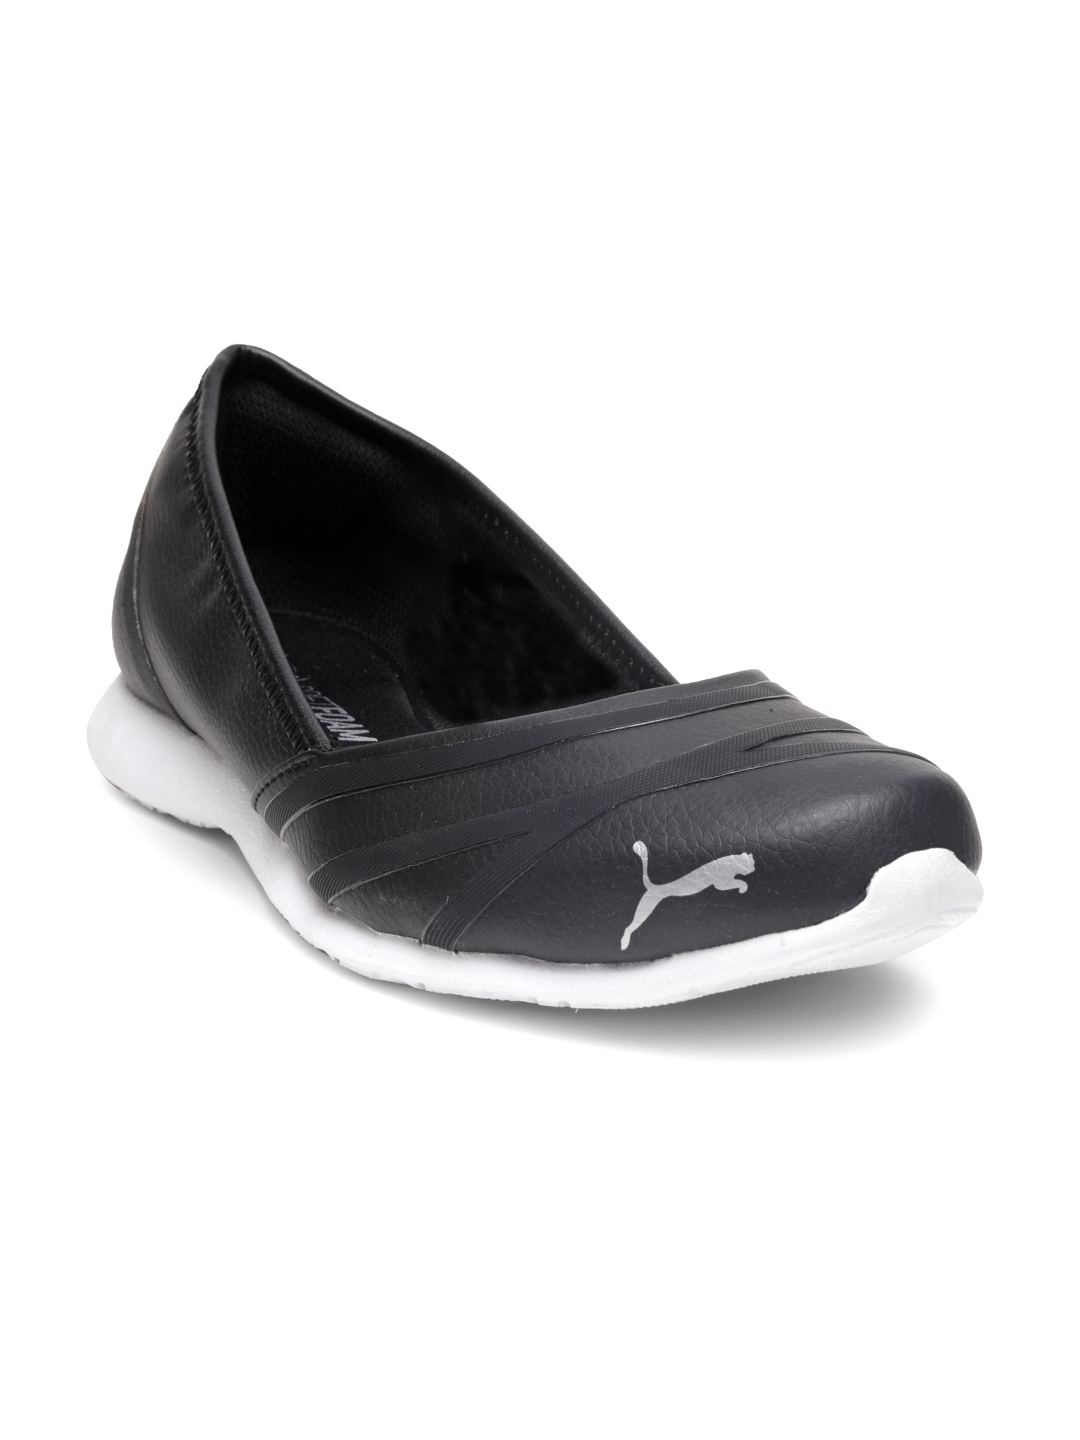 72f3854a63e Buy Puma Women Black Vega Ballet SL IDP Solid Synthetic Ballerinas ...